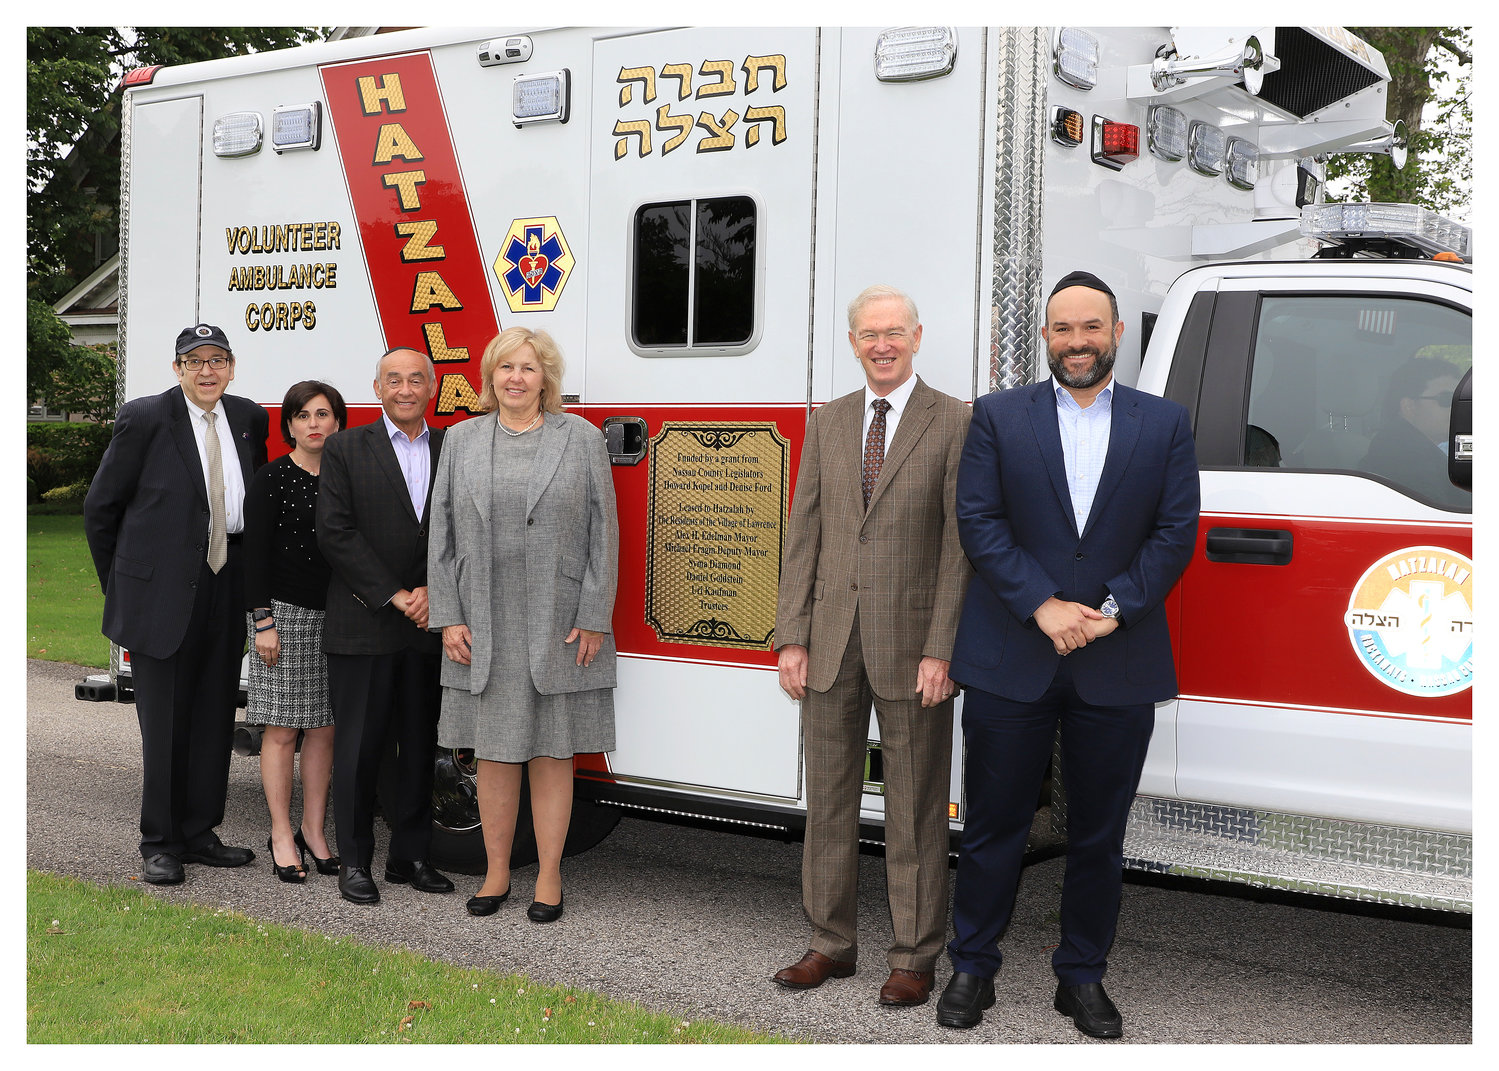 Lawrence village received a $300,000 county grant for a new ambulance that will be used mostly by Hatzalah volunteers. From left were Village Administrator Ron Goldman, Trustee Syma Diamond, Mayor Alex Edelman, County Legislators Denise Ford and Howard Kopel and Deputy Mayor Michael Fragin.